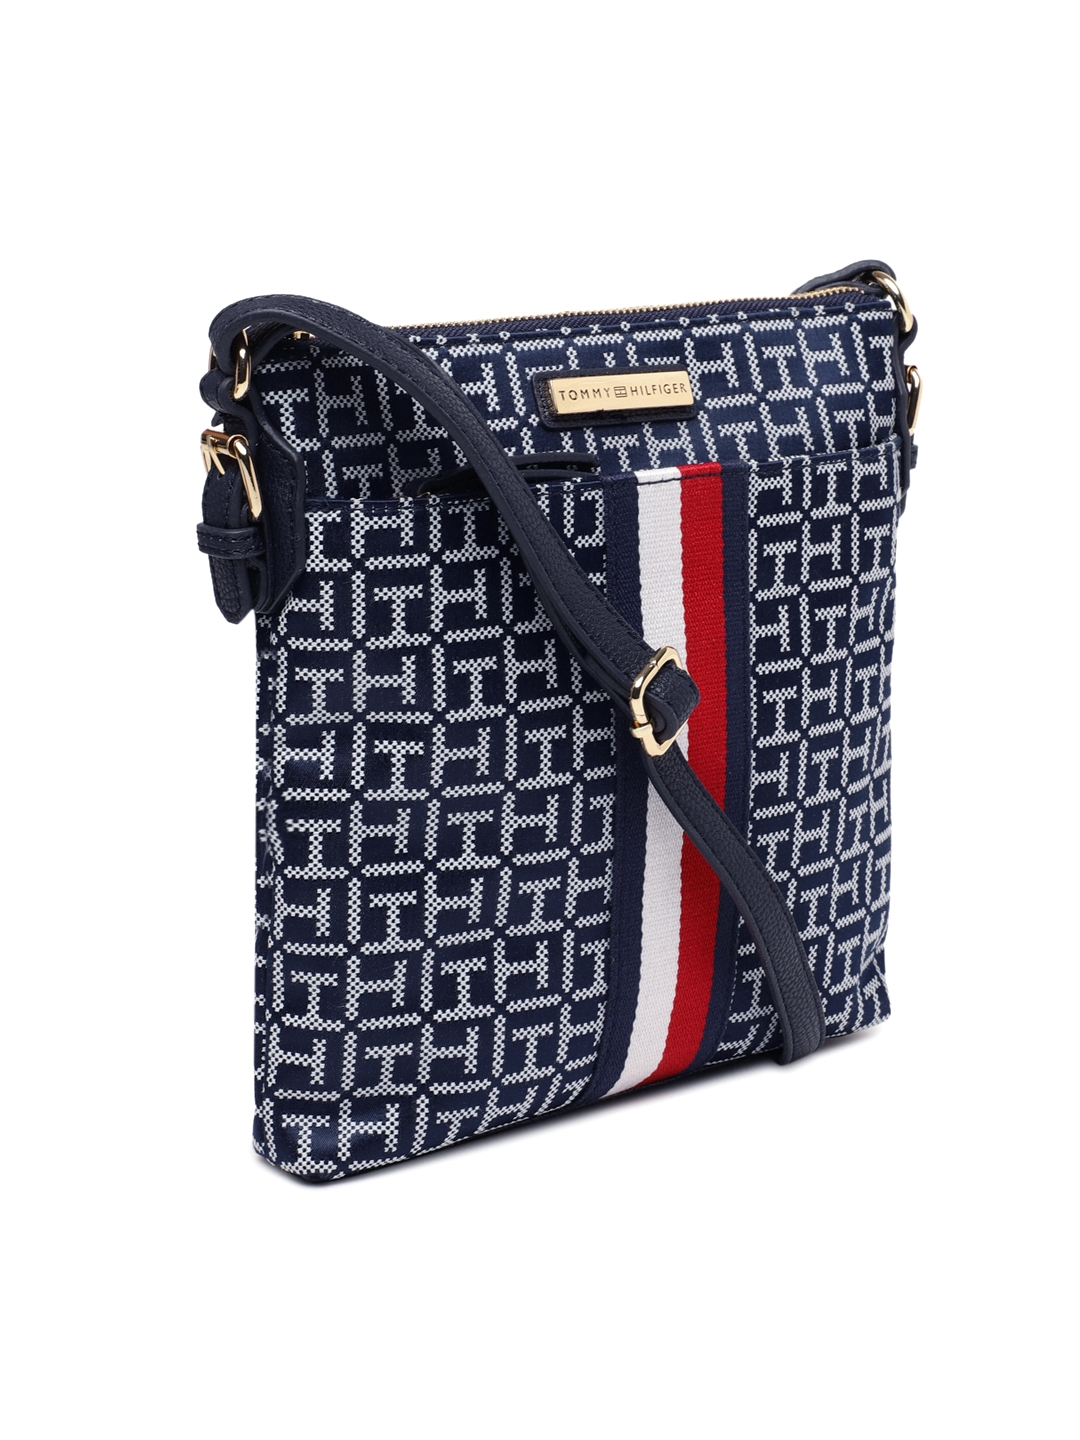 1a9358de2a5 Buy Tommy Hilfiger Navy Blue & White Self Design Sling Bag ...